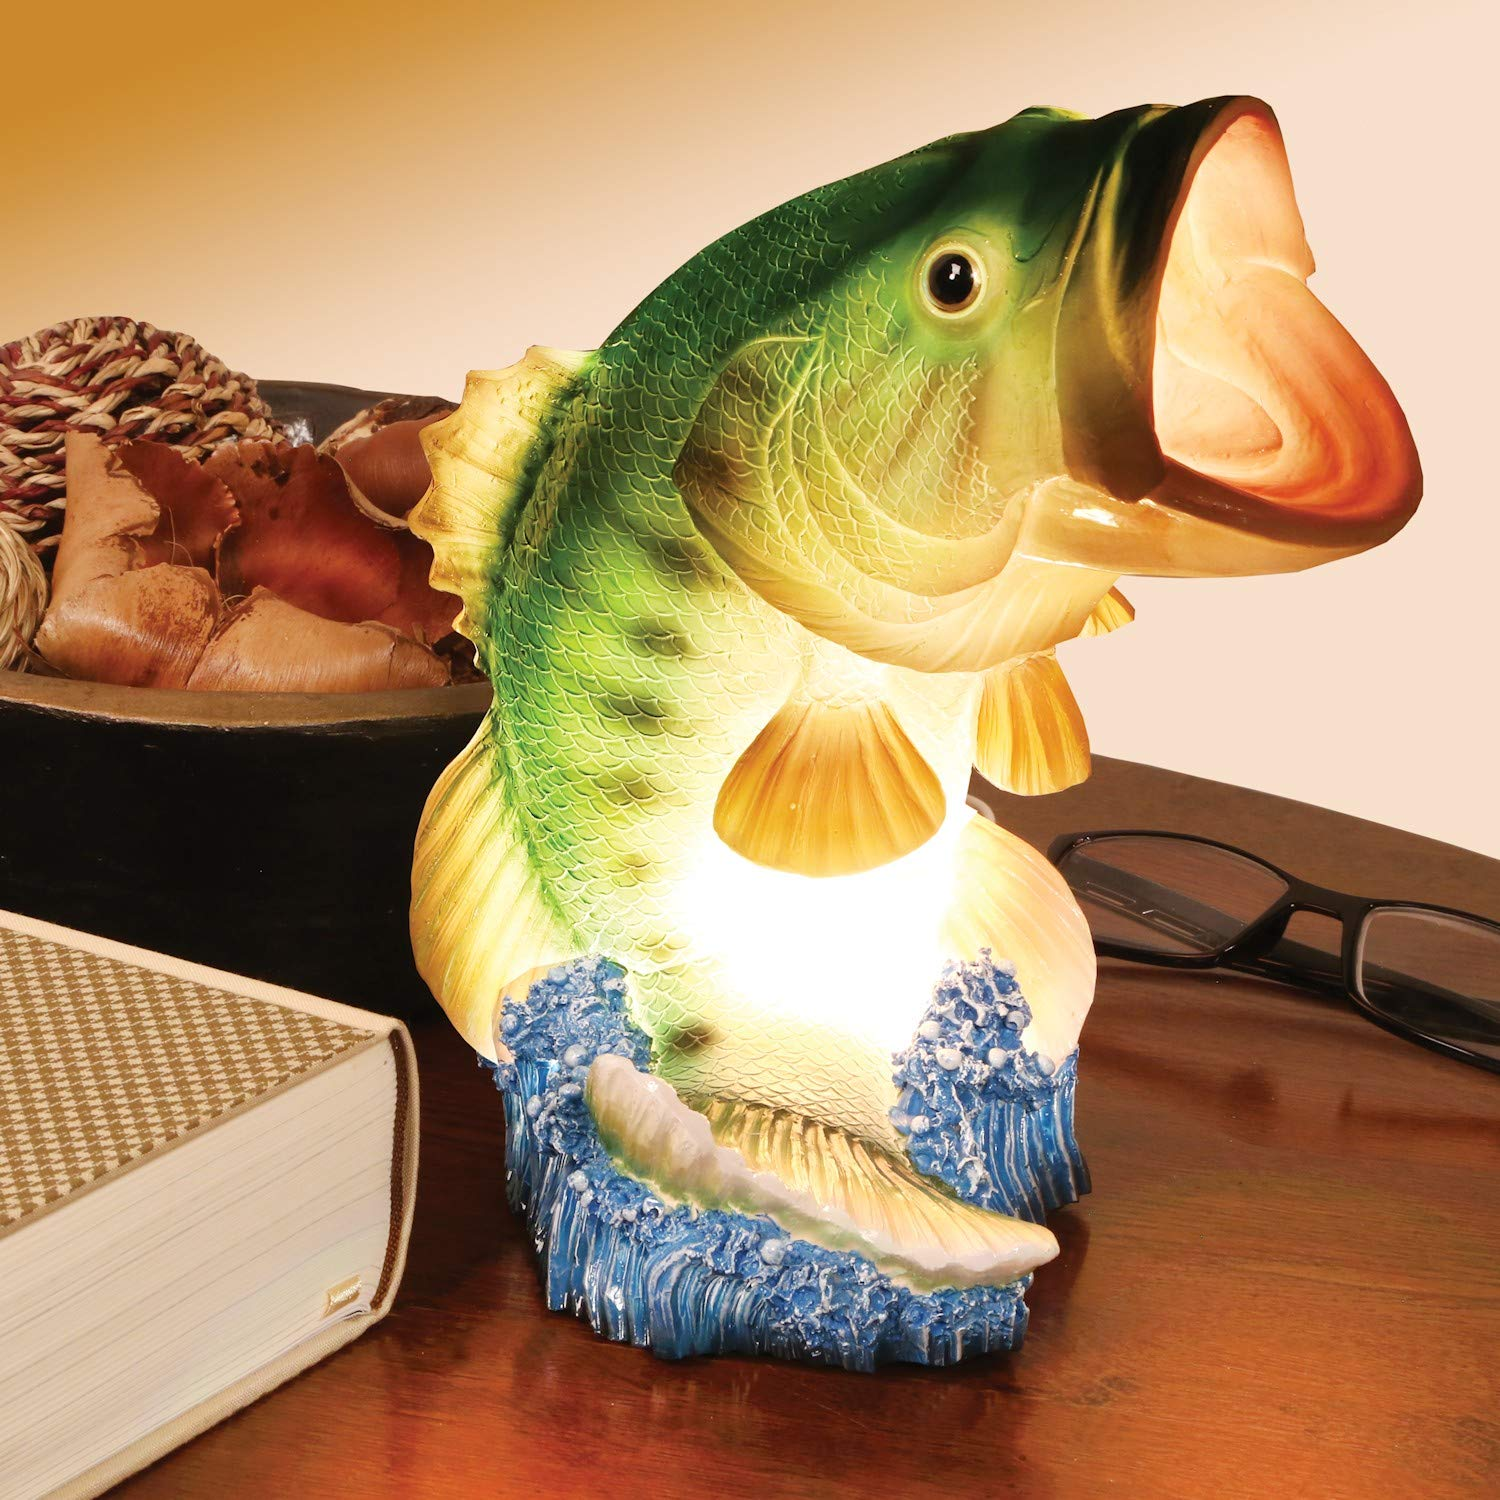 What on Earth Wide Mouth Bass Table Lamp - Lifelike Fish Shaped Accent Light